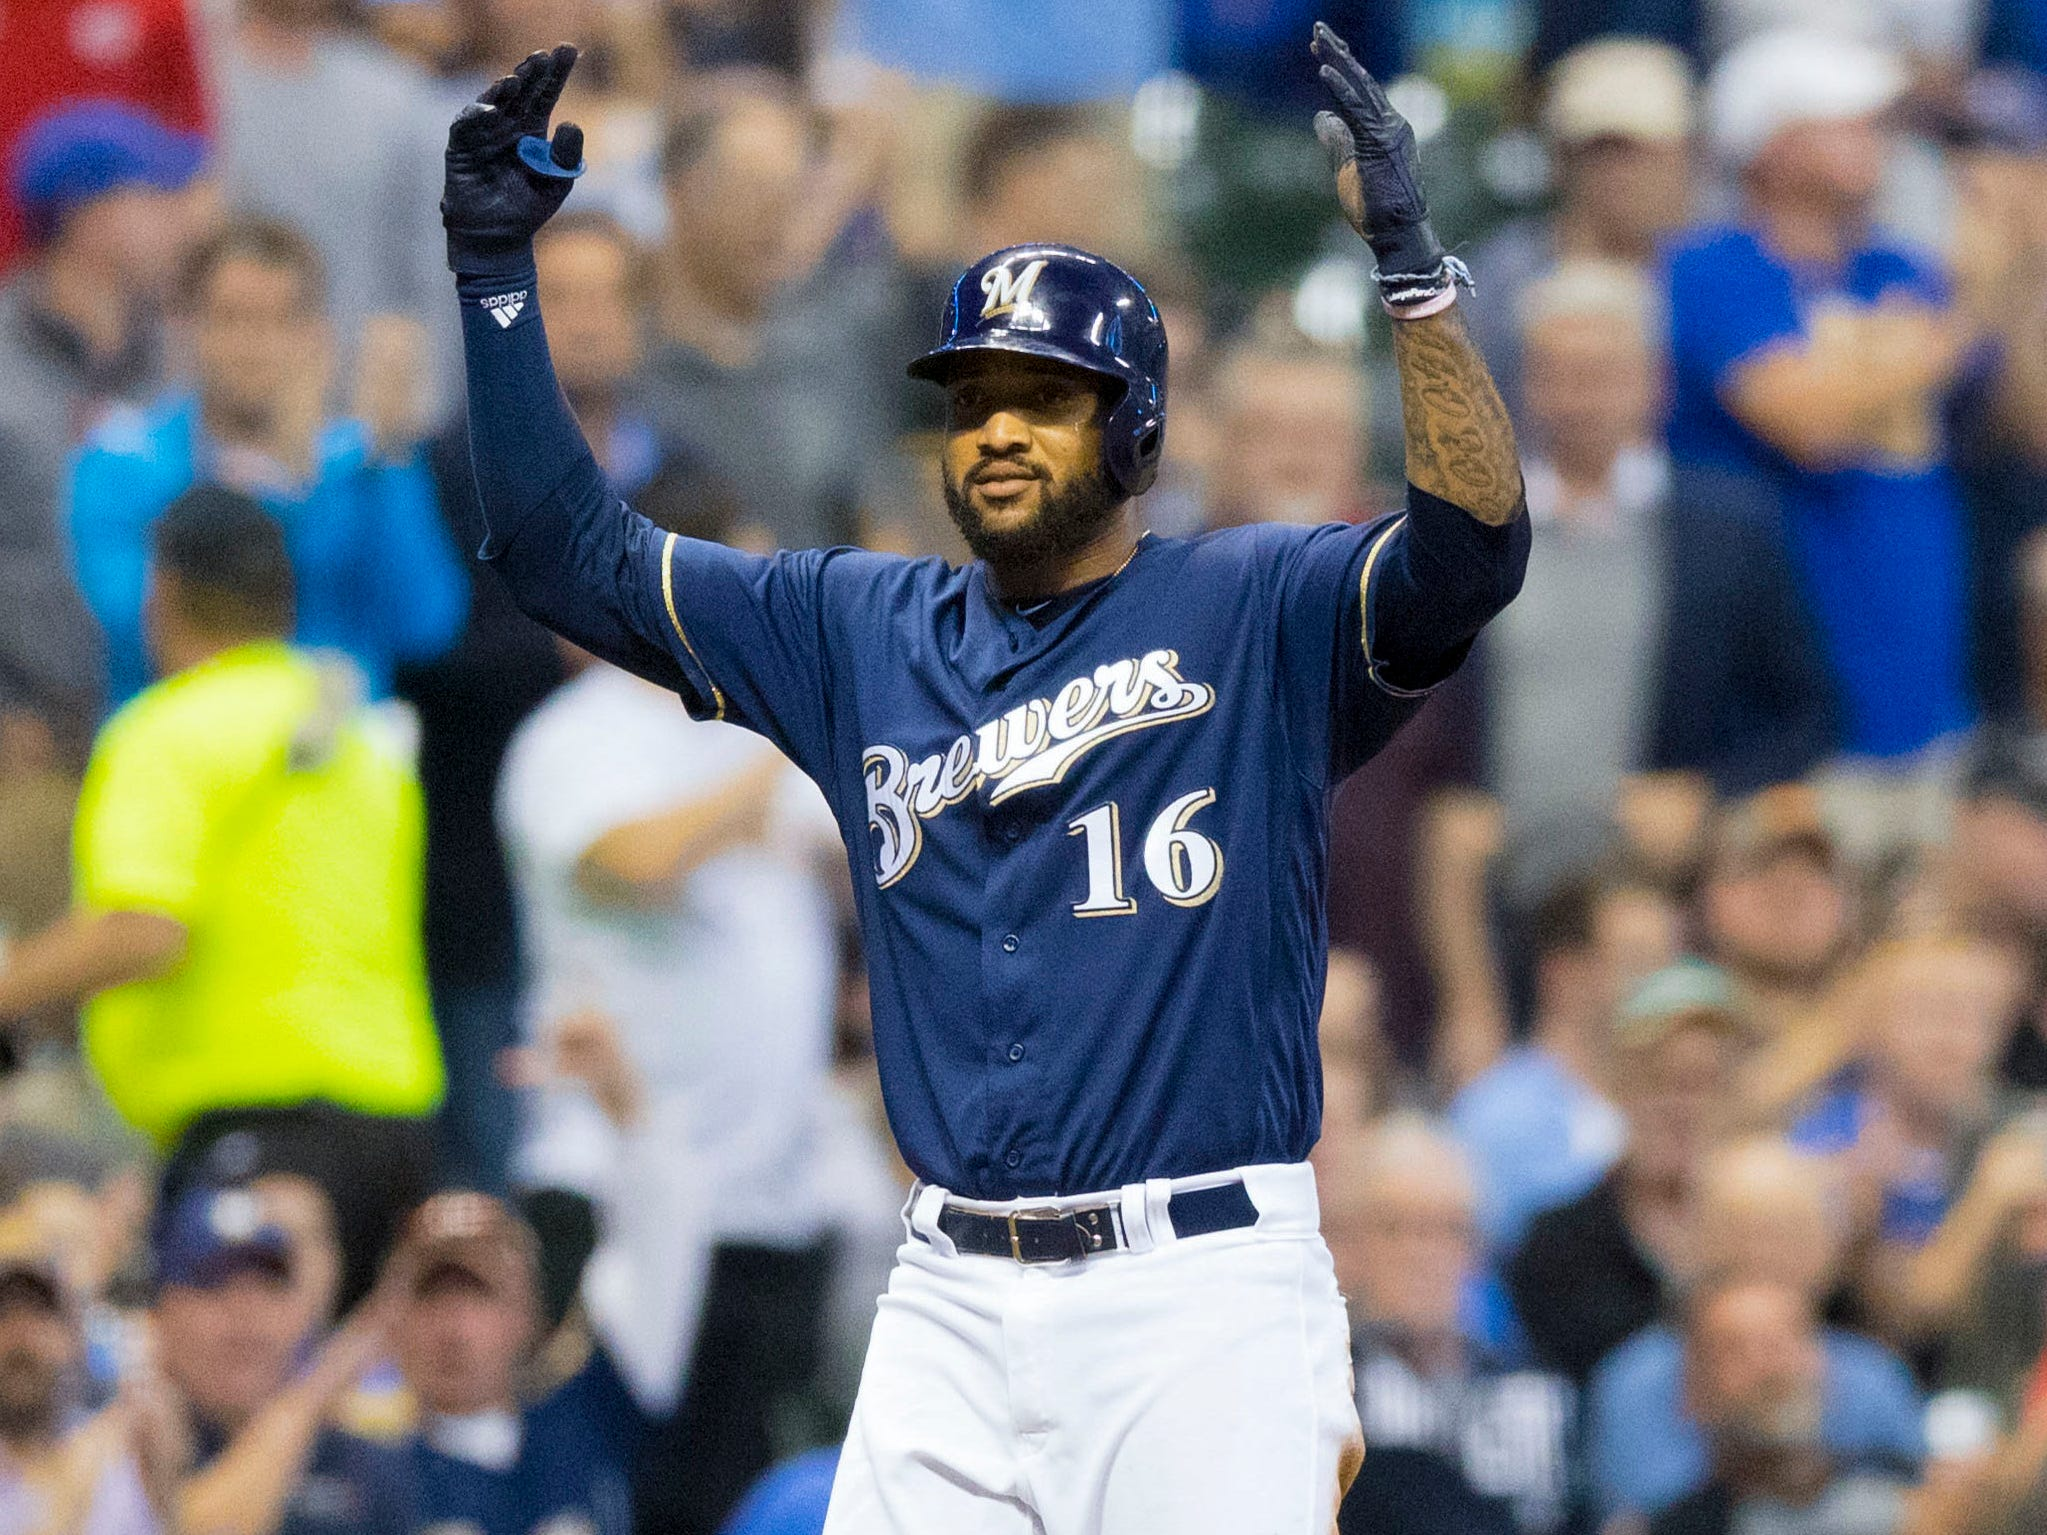 Brewers rightfielder Domingo Santana gestures toward the Brewers dugout  after tripling in the sixth inning against the Reds on Wednesday night.